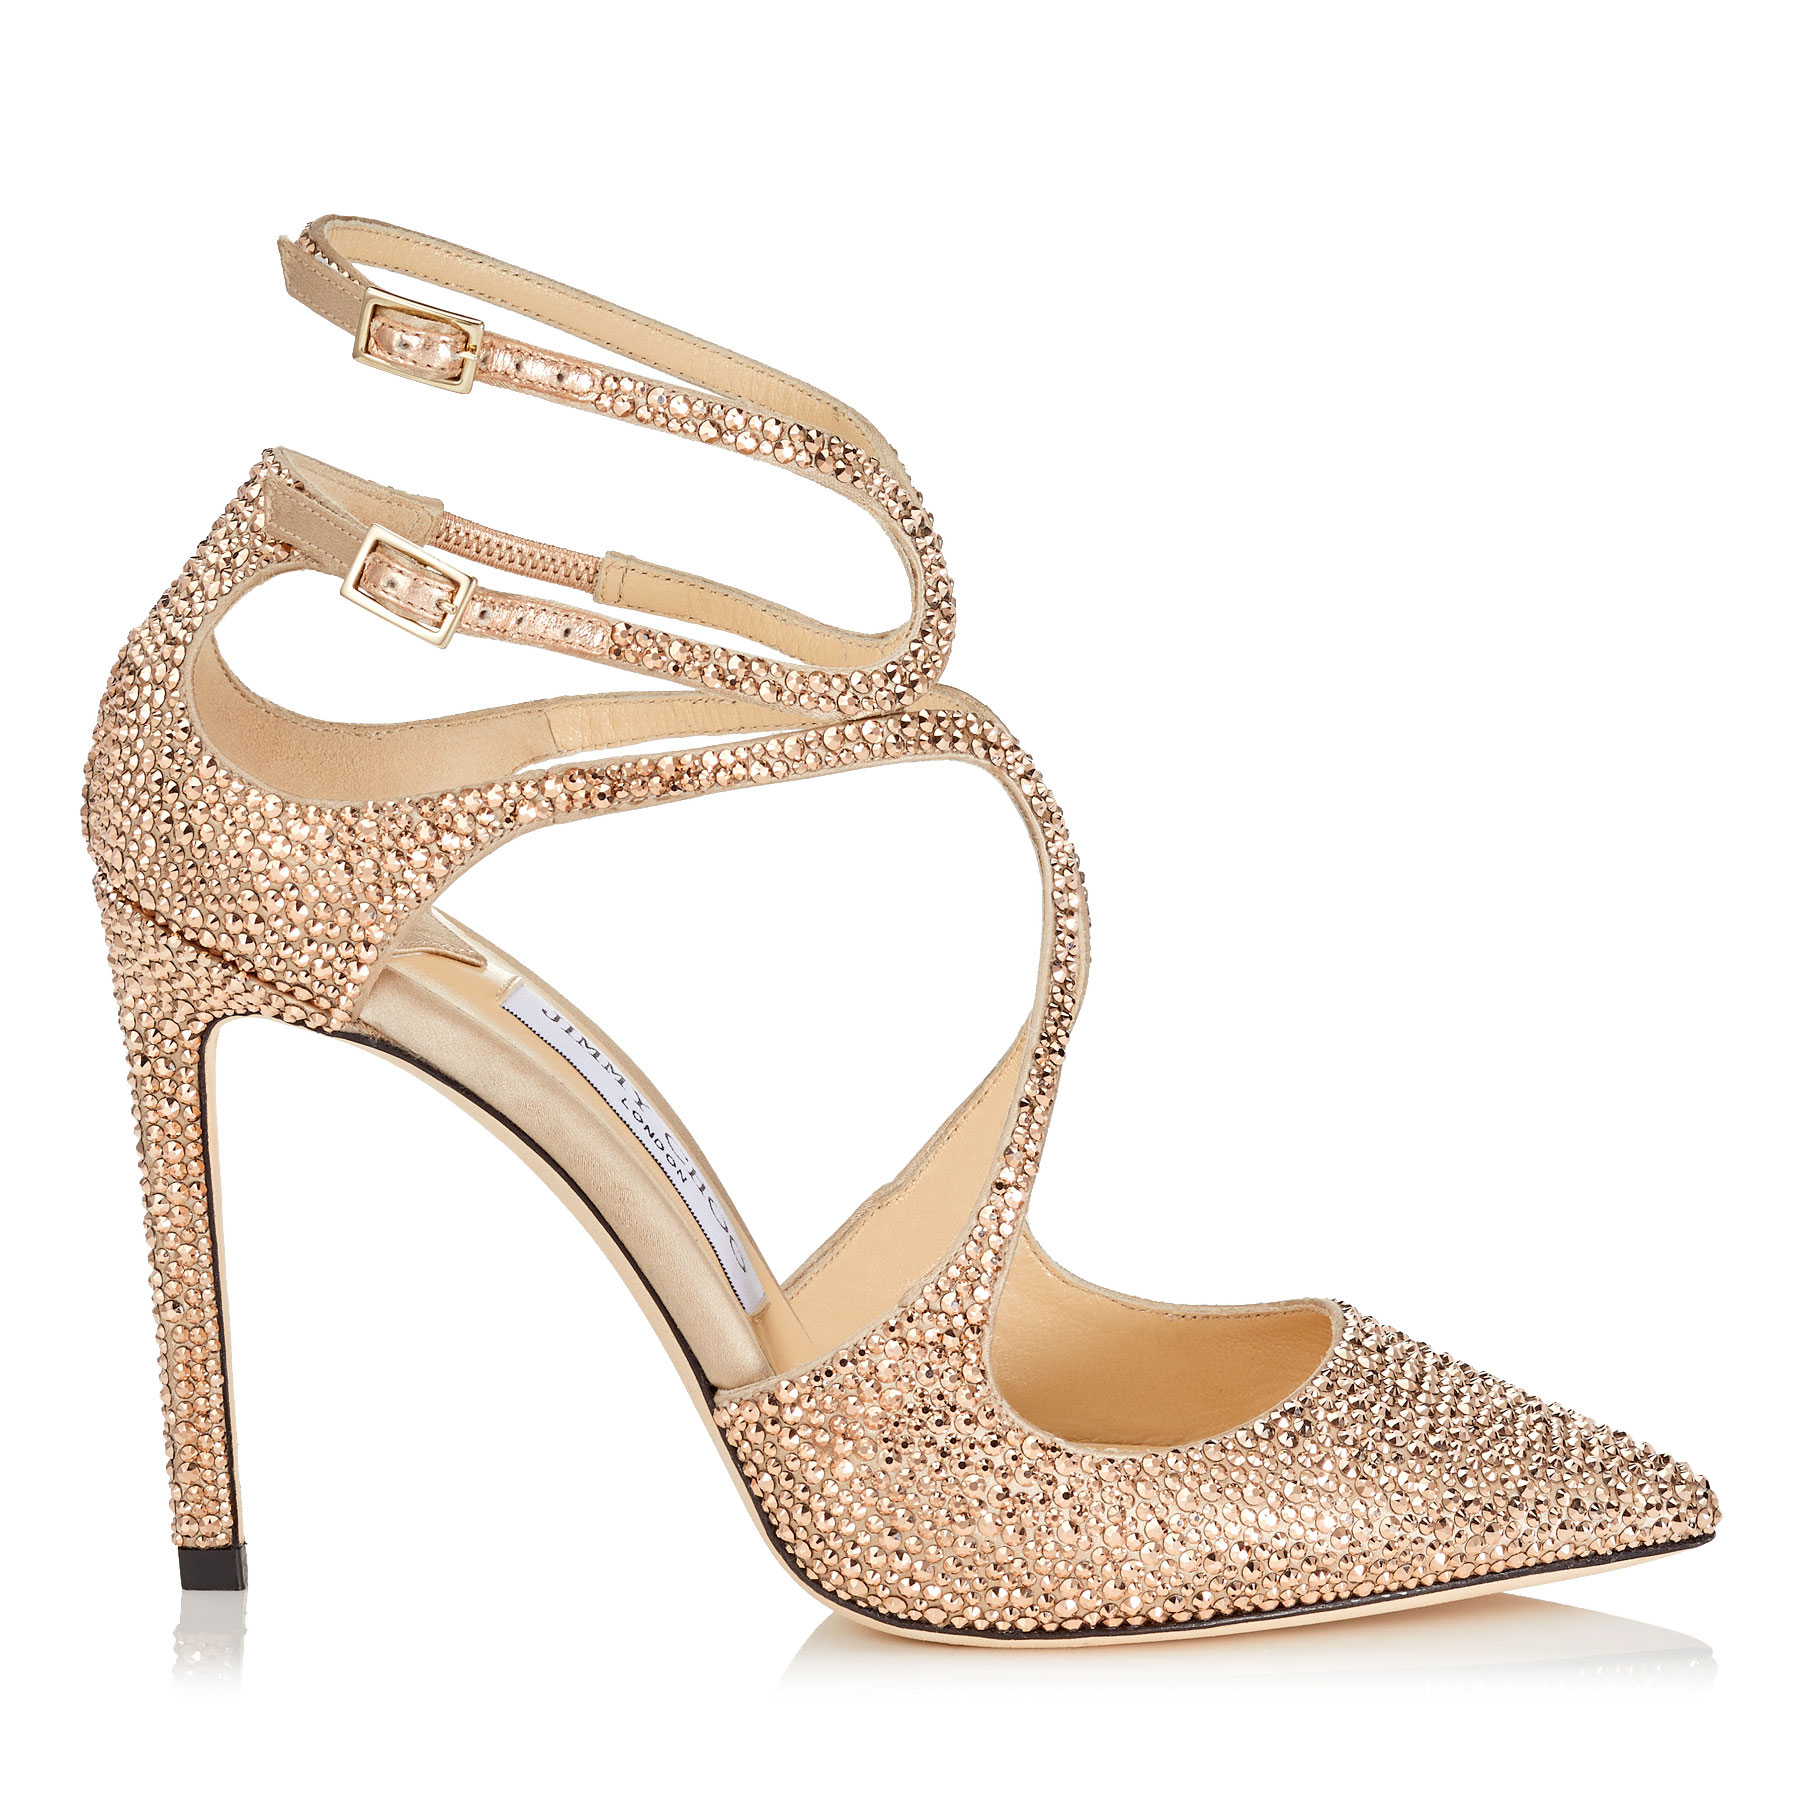 LANCER 100 Rose Gold Satin Pointy Toe Pumps with Crystal Hotfix by Jimmy Choo